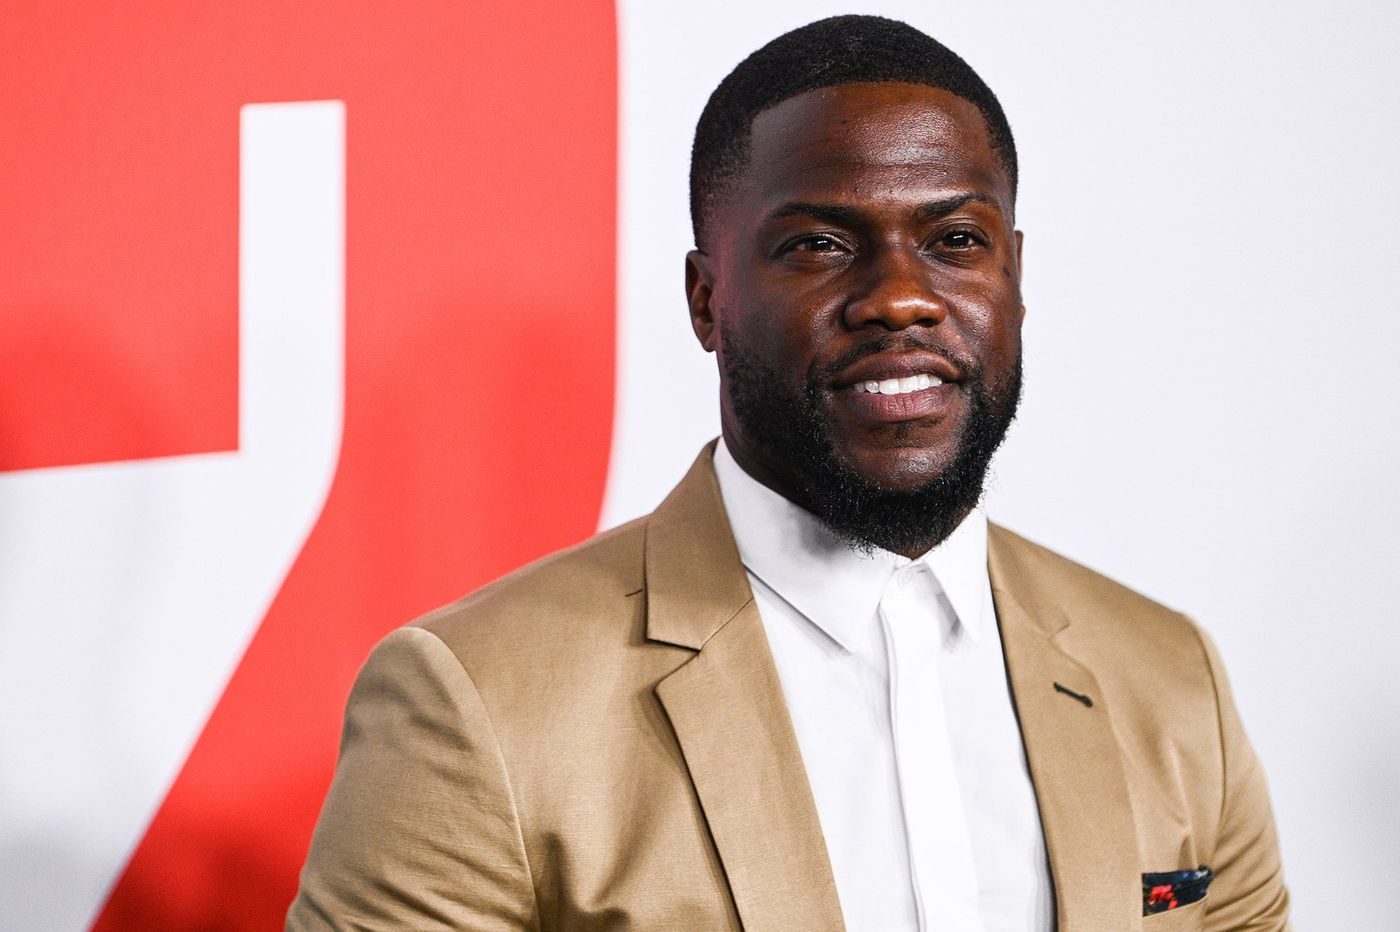 Extortion charges against former friend of Kevin Hart dropped in sex tape case